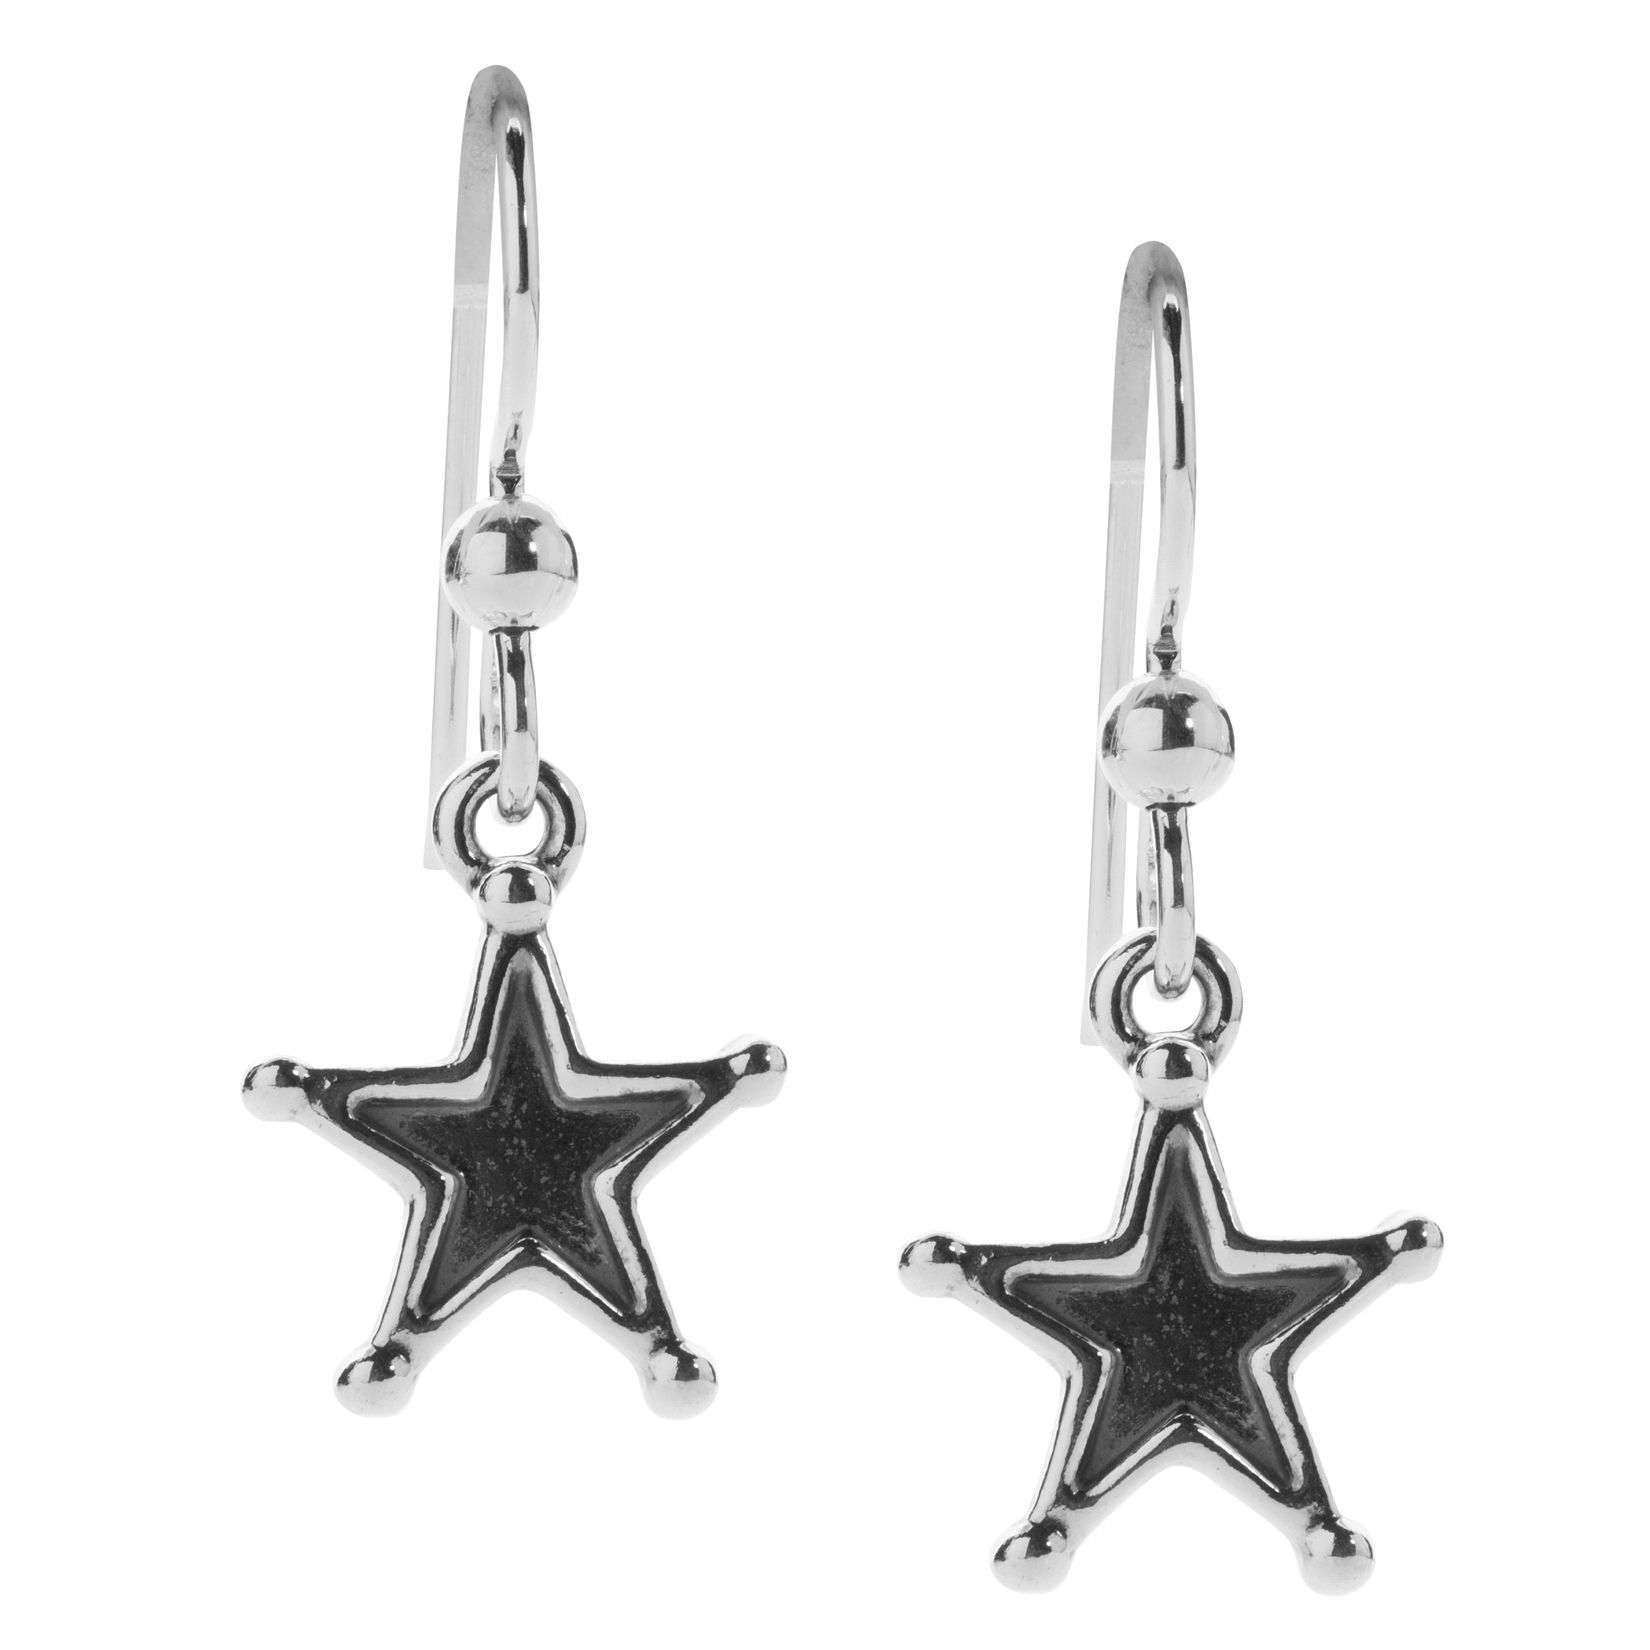 16160d20f Sterling silver dangle star earrings. Measurement: 1-1/8″ long x 3/8″ wide.  Designed and crafted in America.